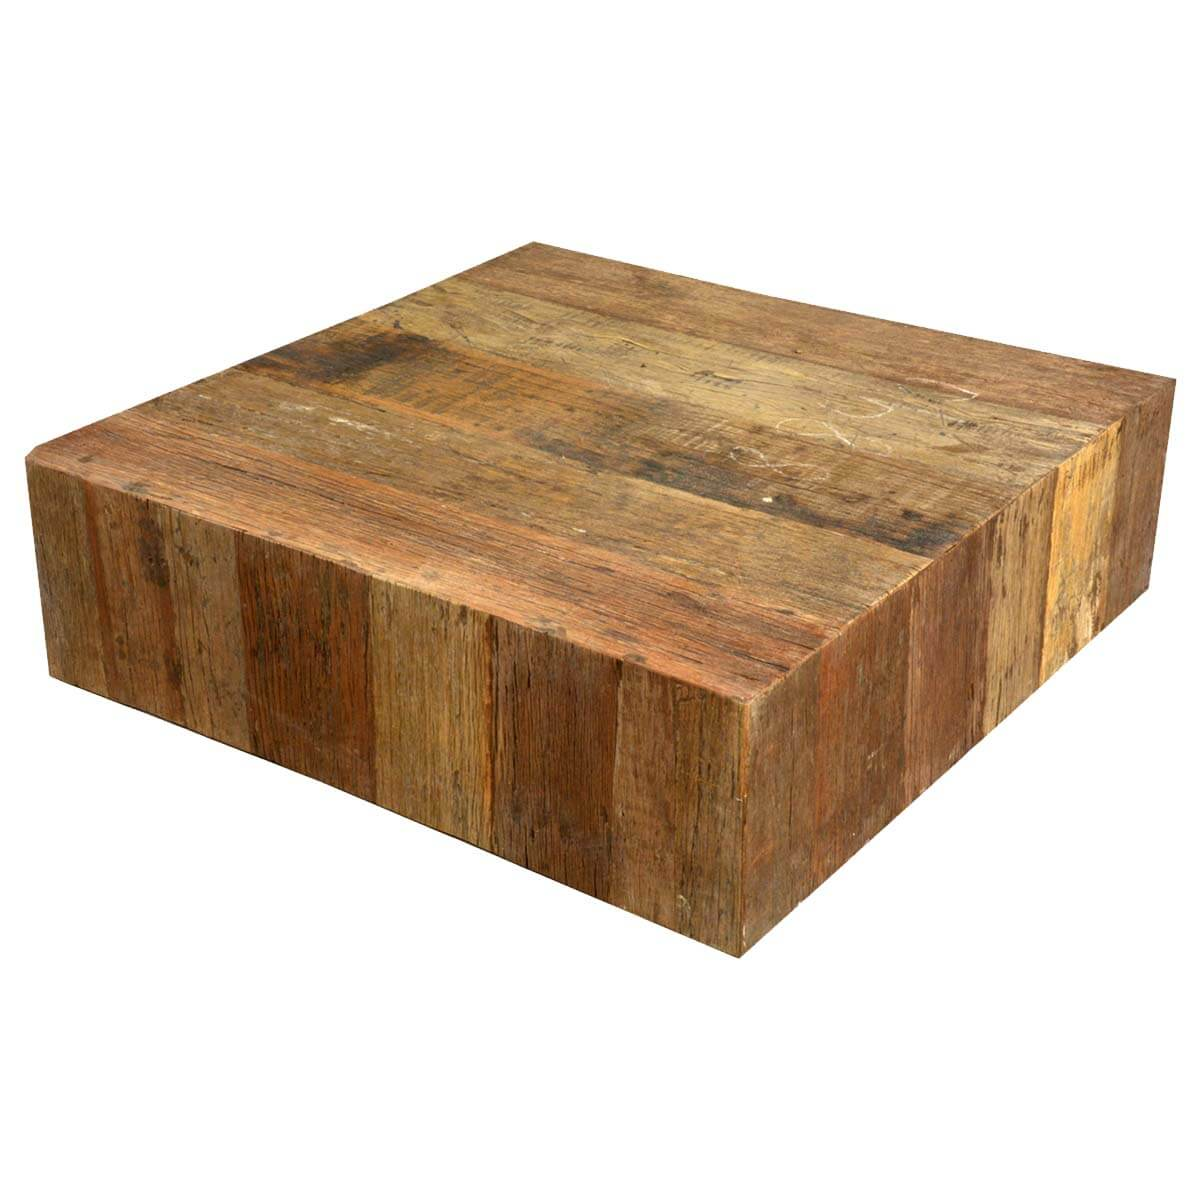 Unique Rustic Railroad Reclaimed Wood Square Coffee Table Fremont California